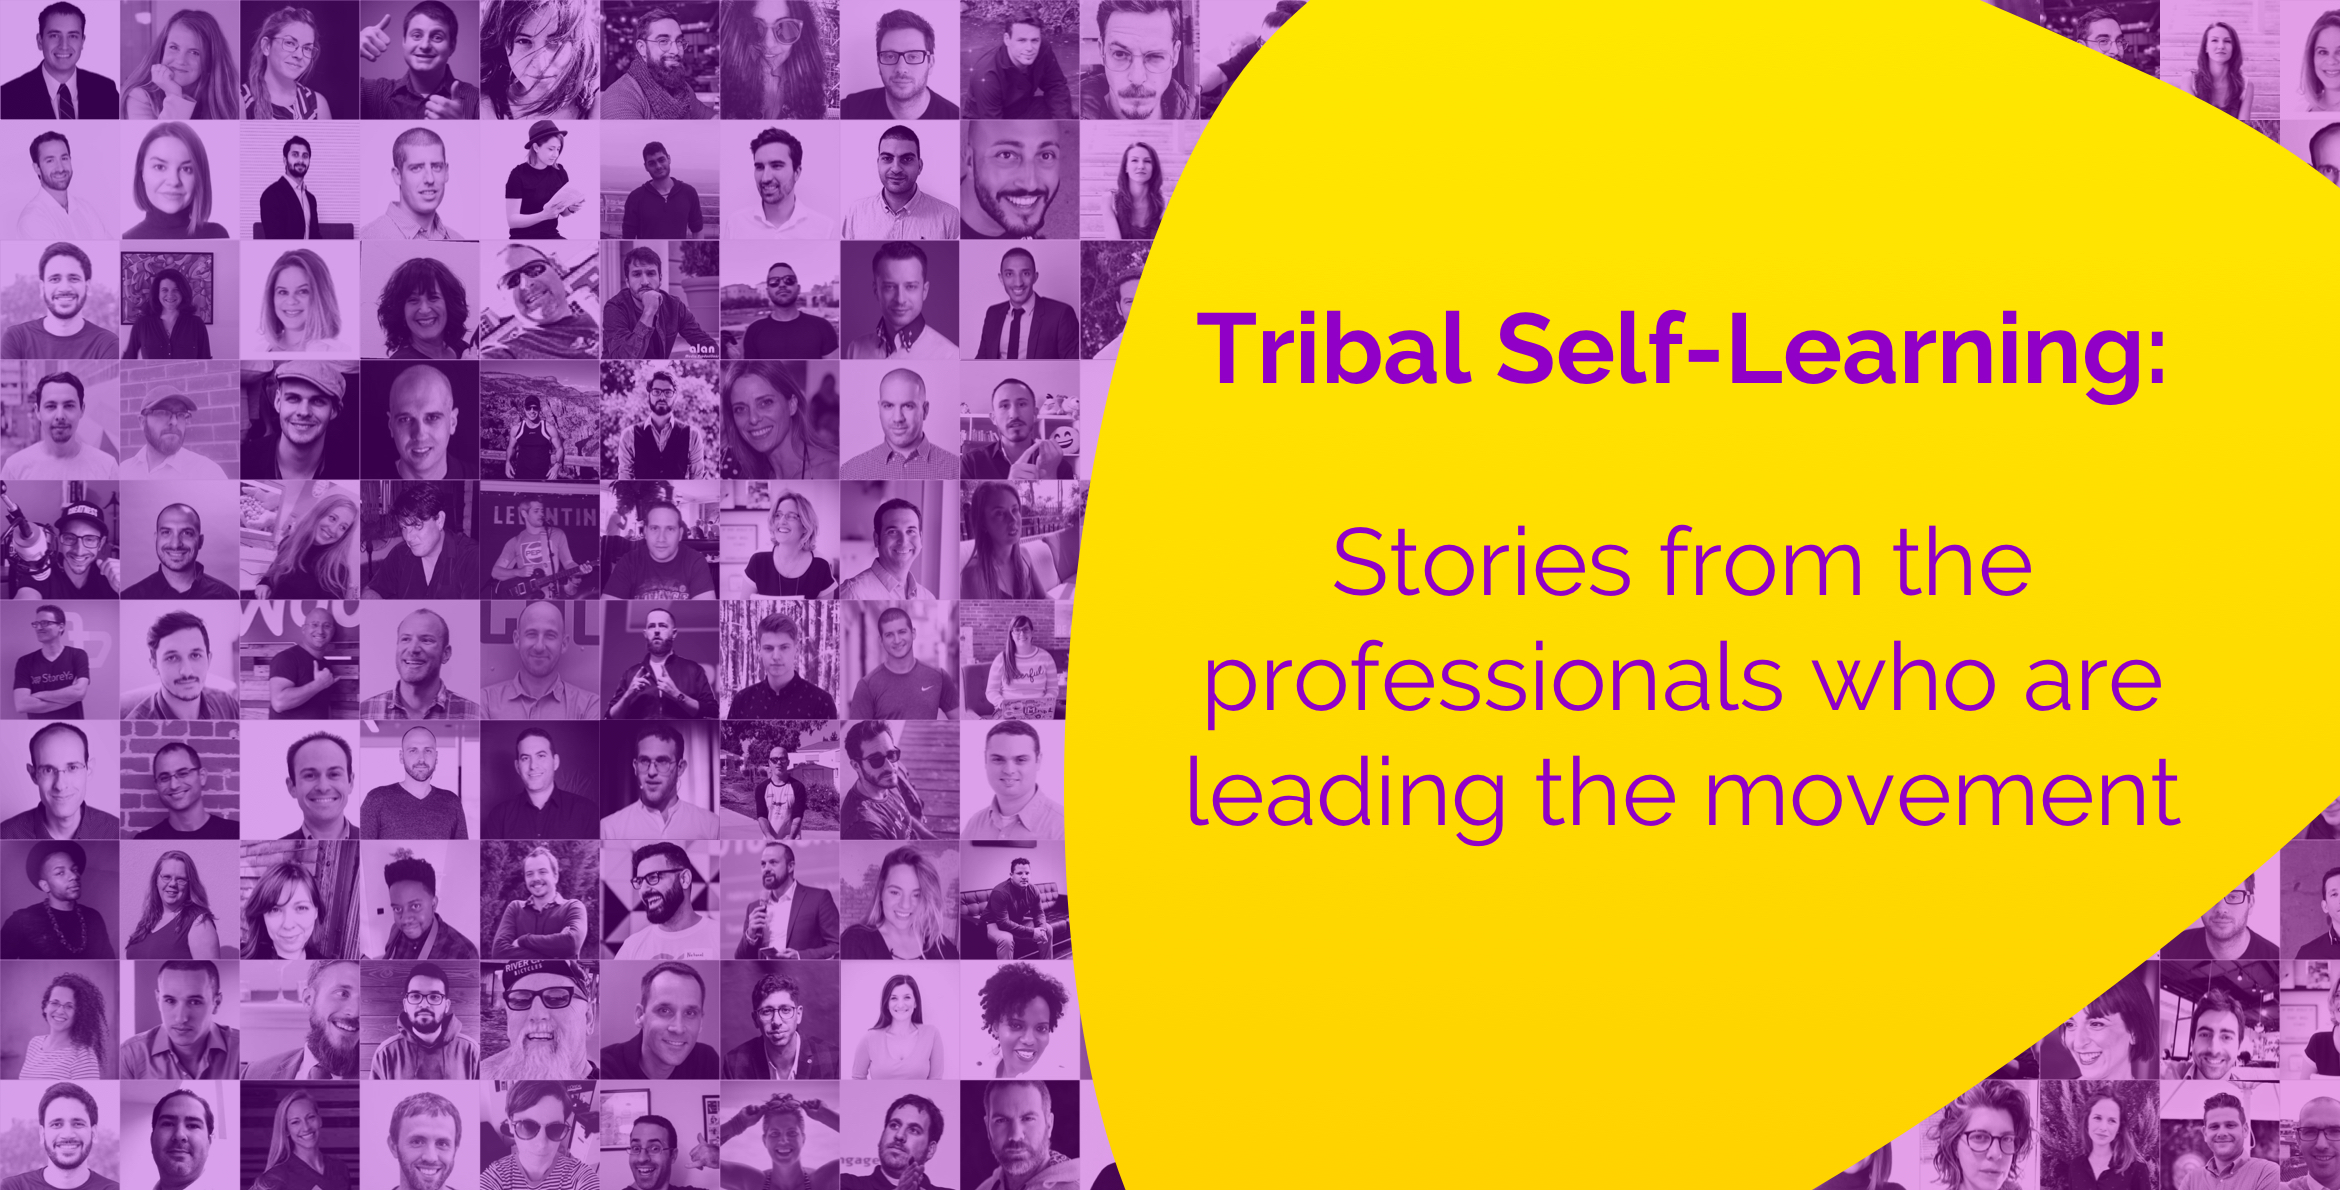 The Tribal Self-Learning Movement My Only Career Plan images of the contributors of stories in support of Zest Enlight